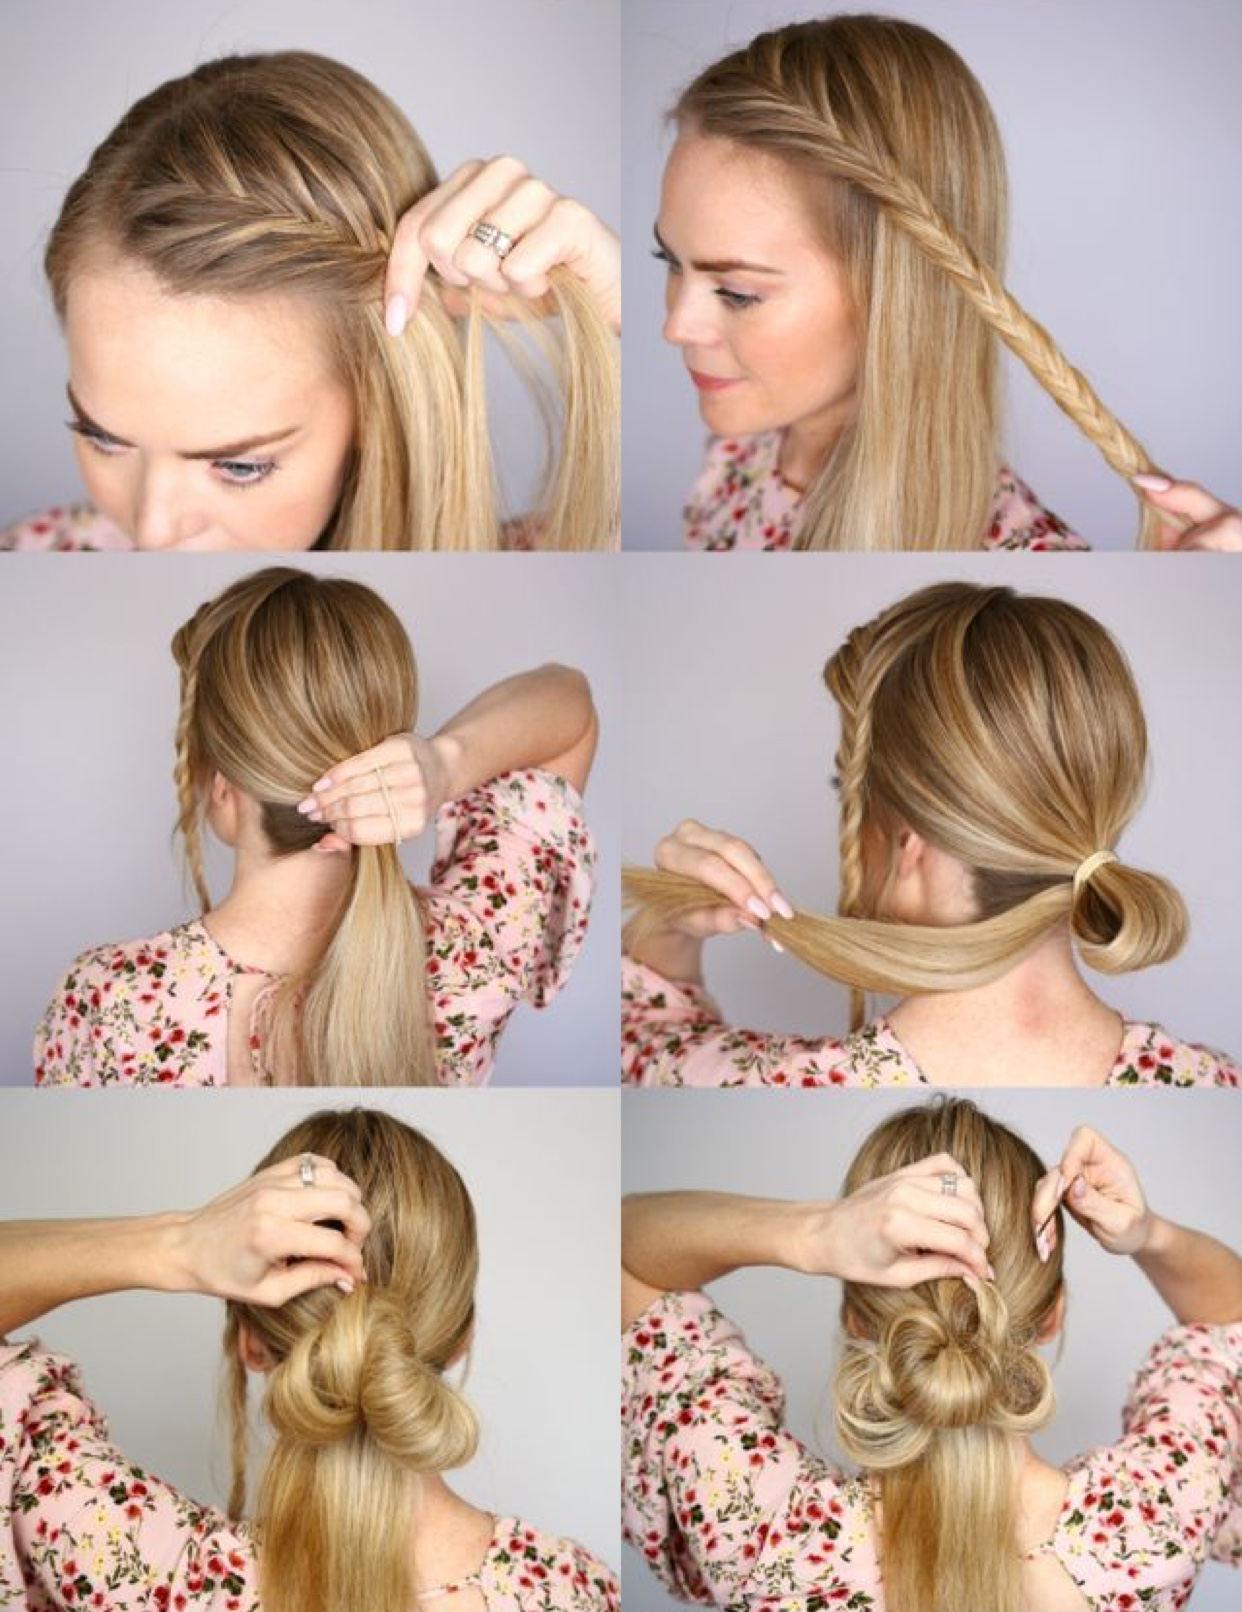 7 Cute And Sexy Fall Hairstyles For Beginners